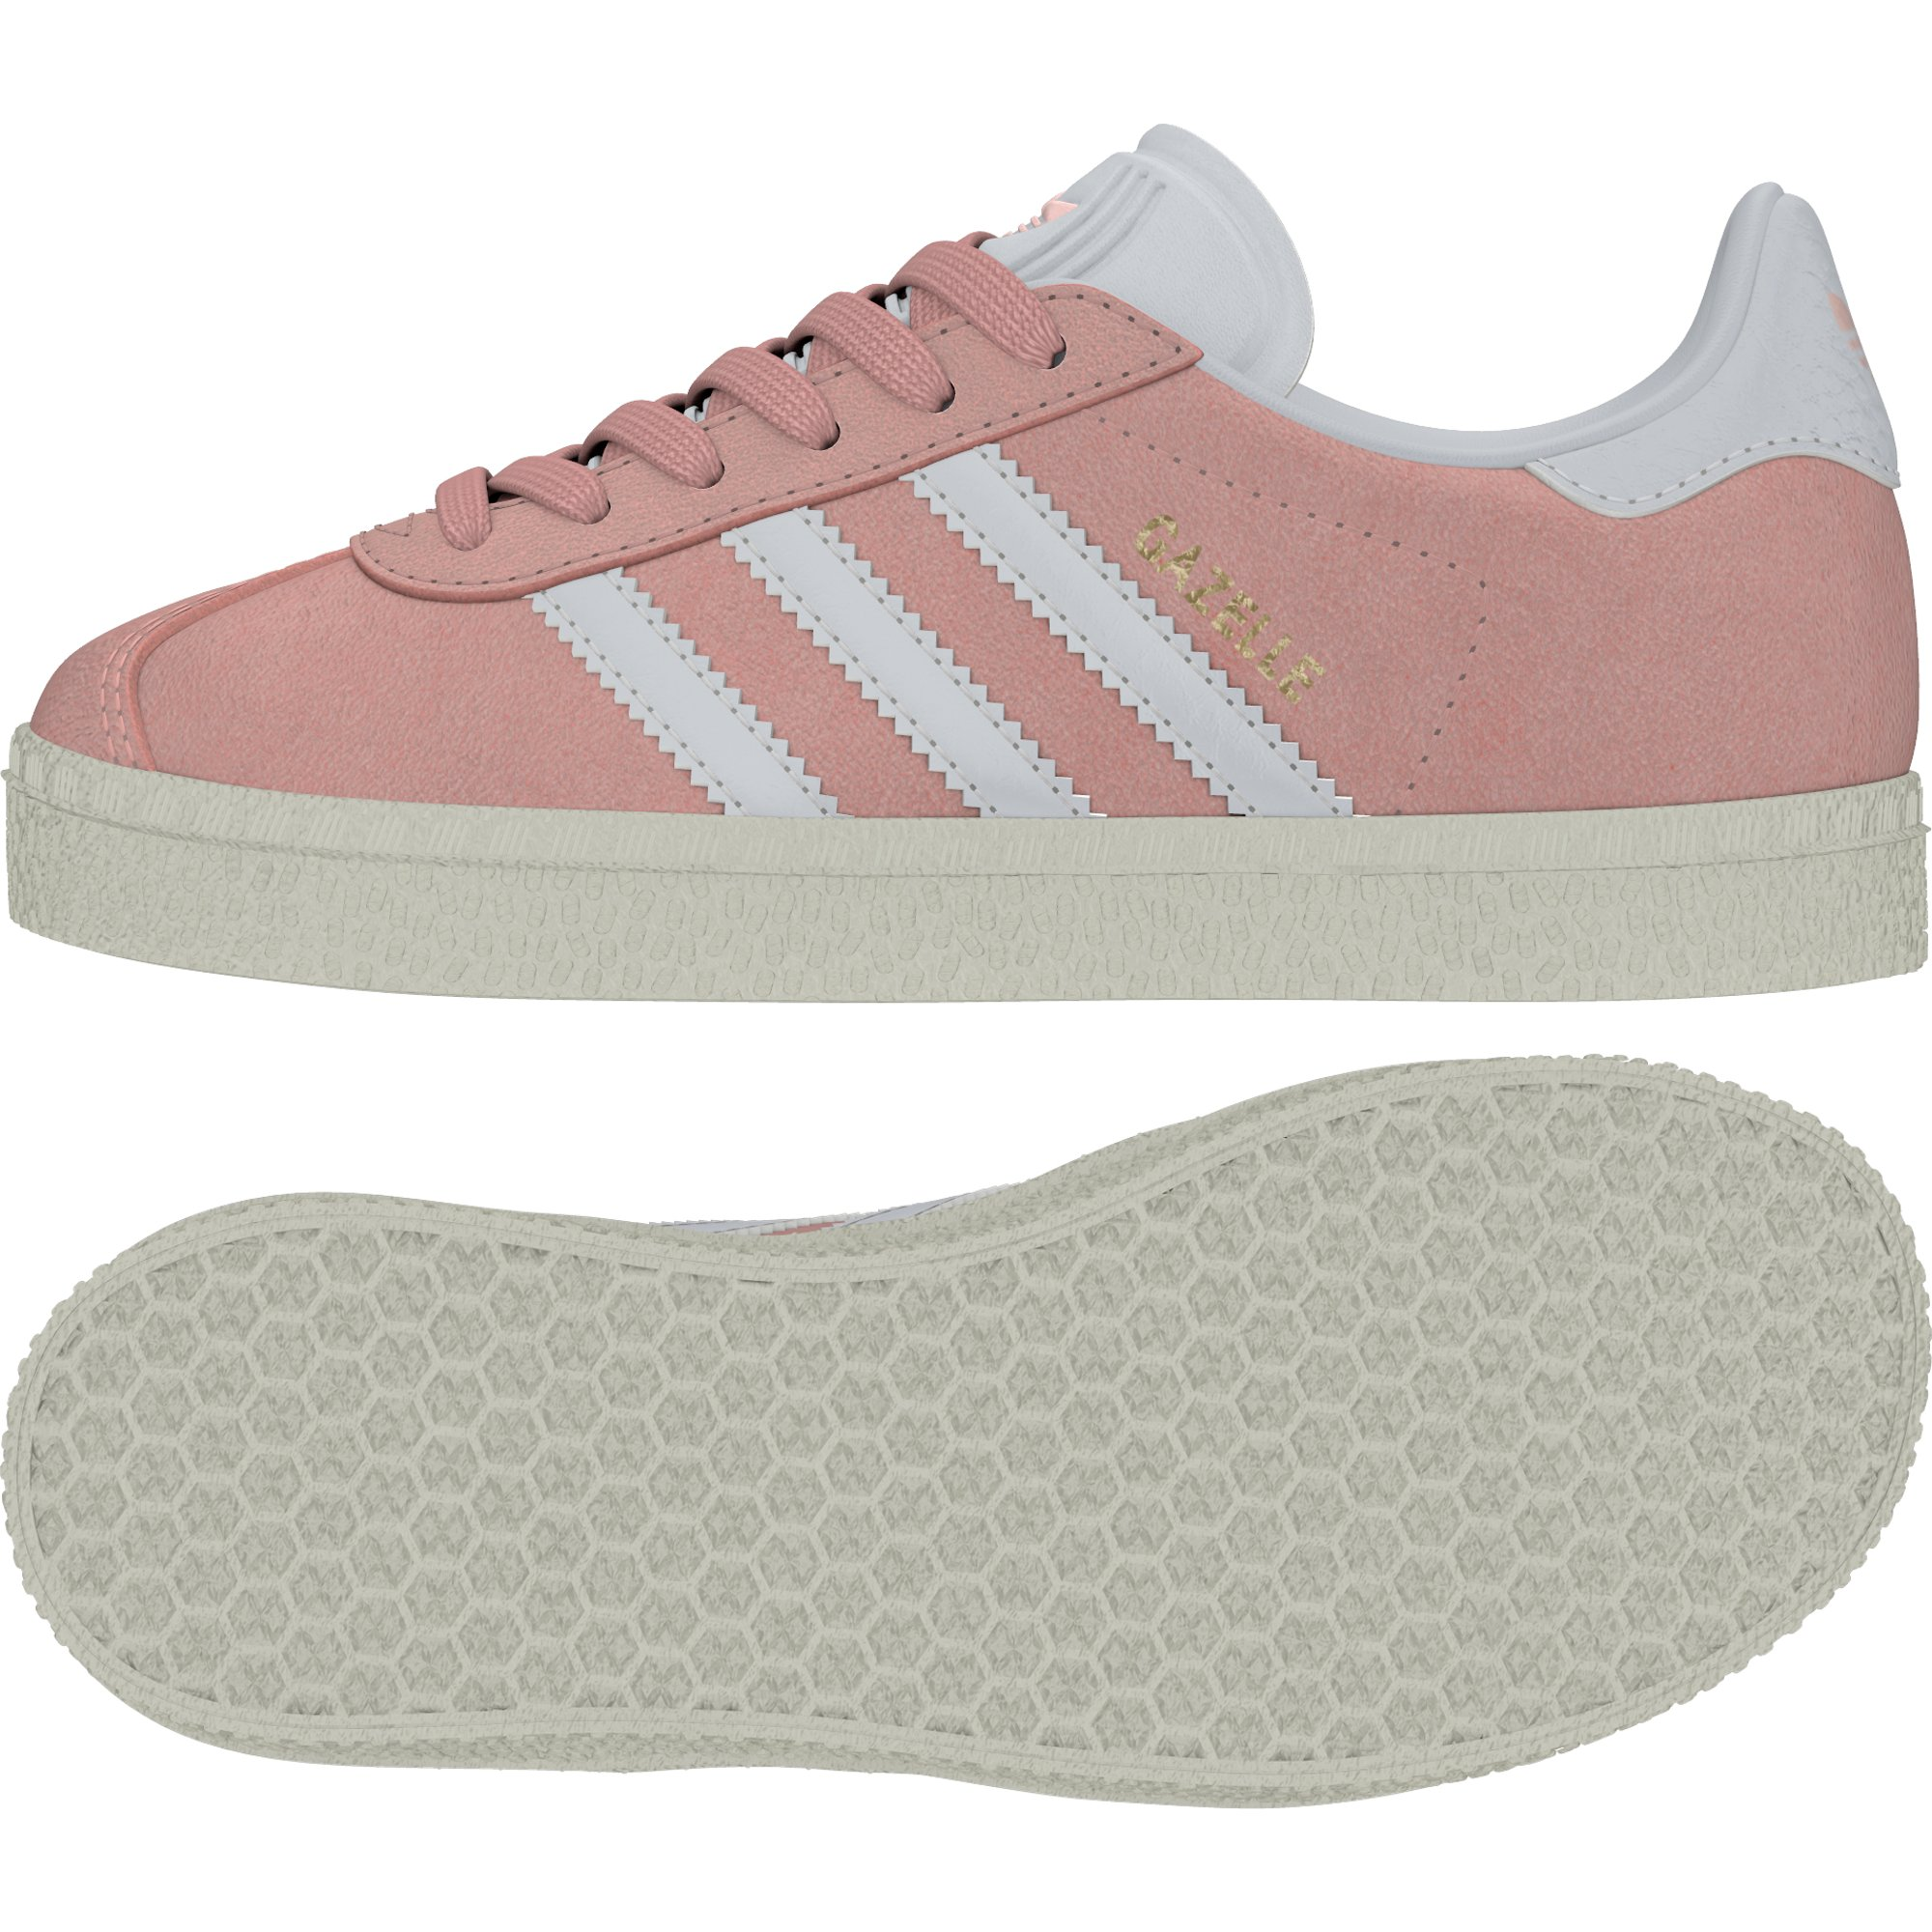 Adidas Originals Gazelle - Scarpe Neutre  28243dad068